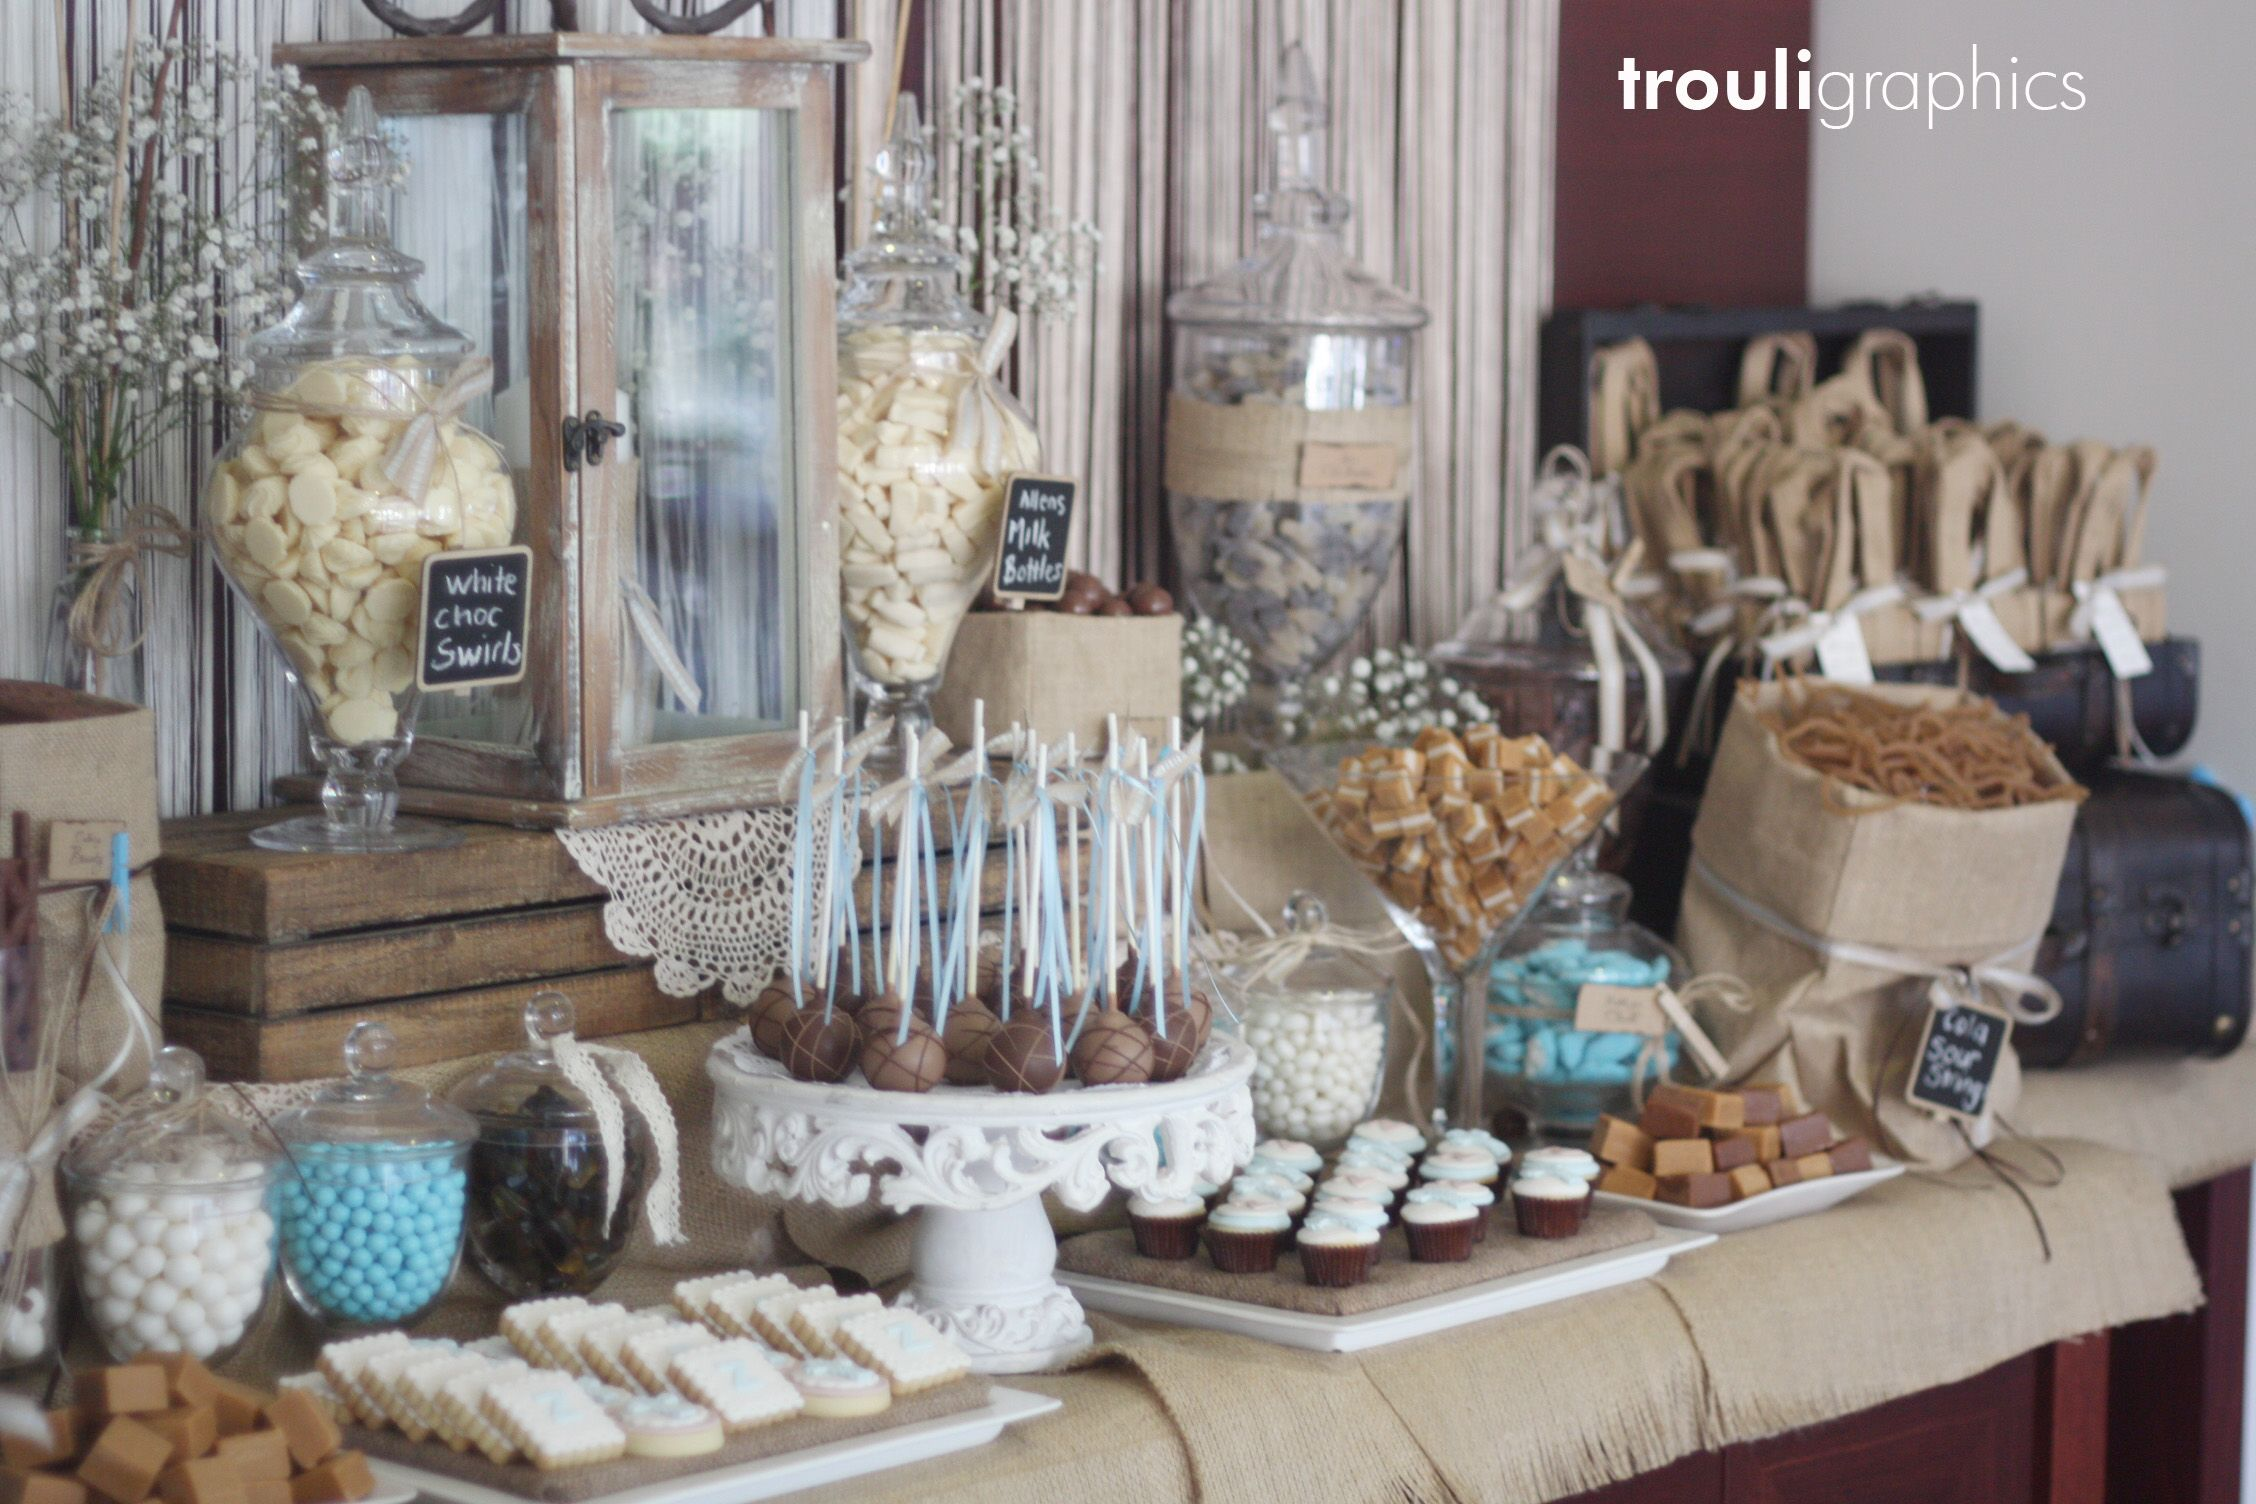 Candy Buffet designed by Trouligraphics